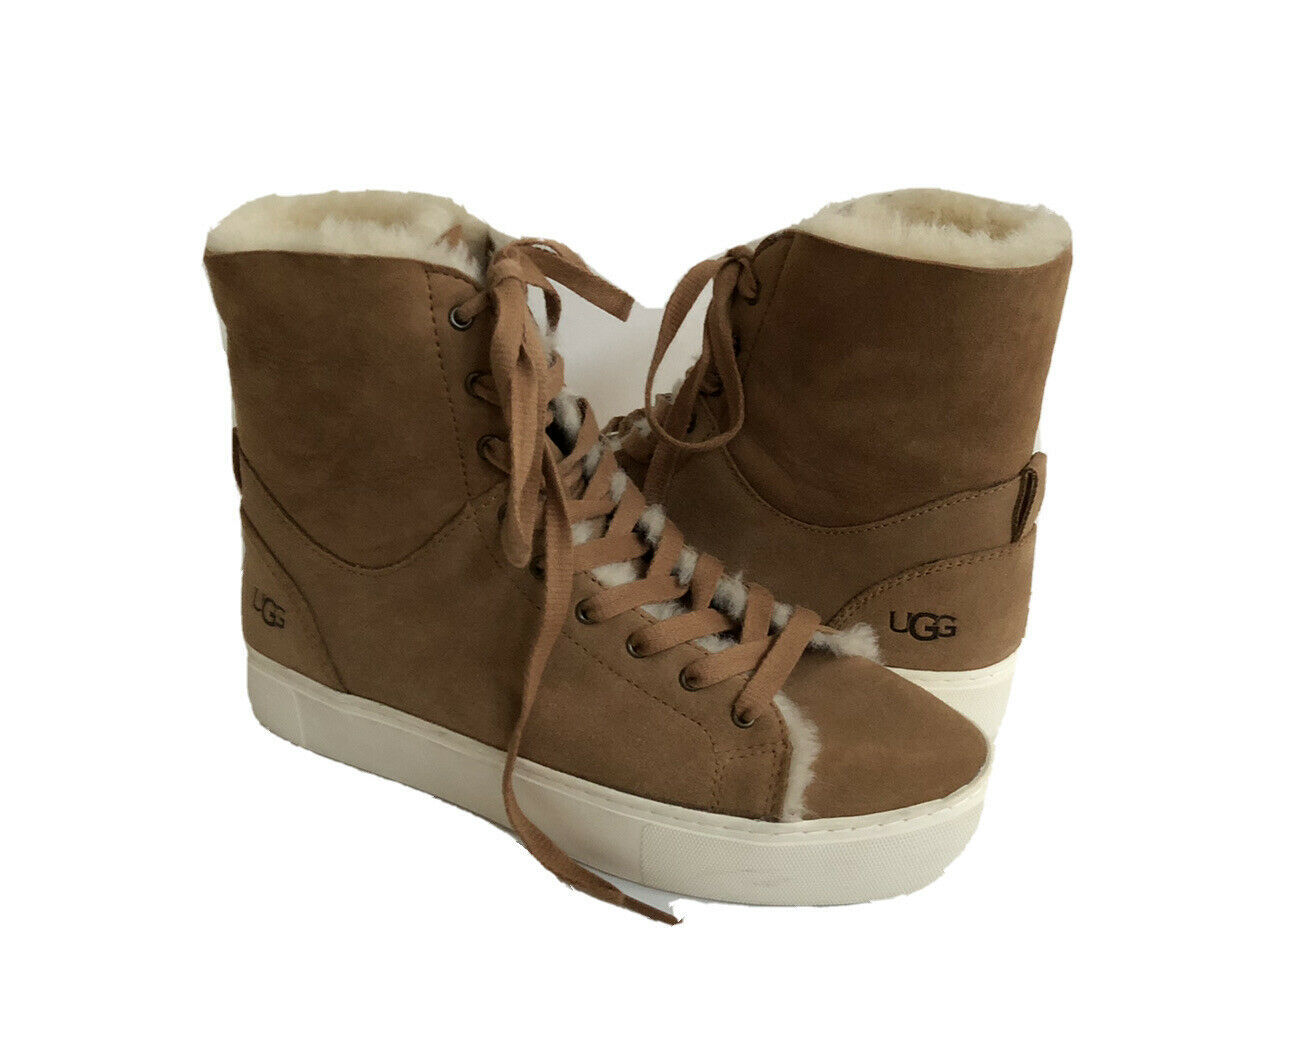 UGG BEVEN CHESTNUT CUFFABLE HIGH TOP SUEDE SNEAKER US 5 / EU 36 / UK 3 - $88.83